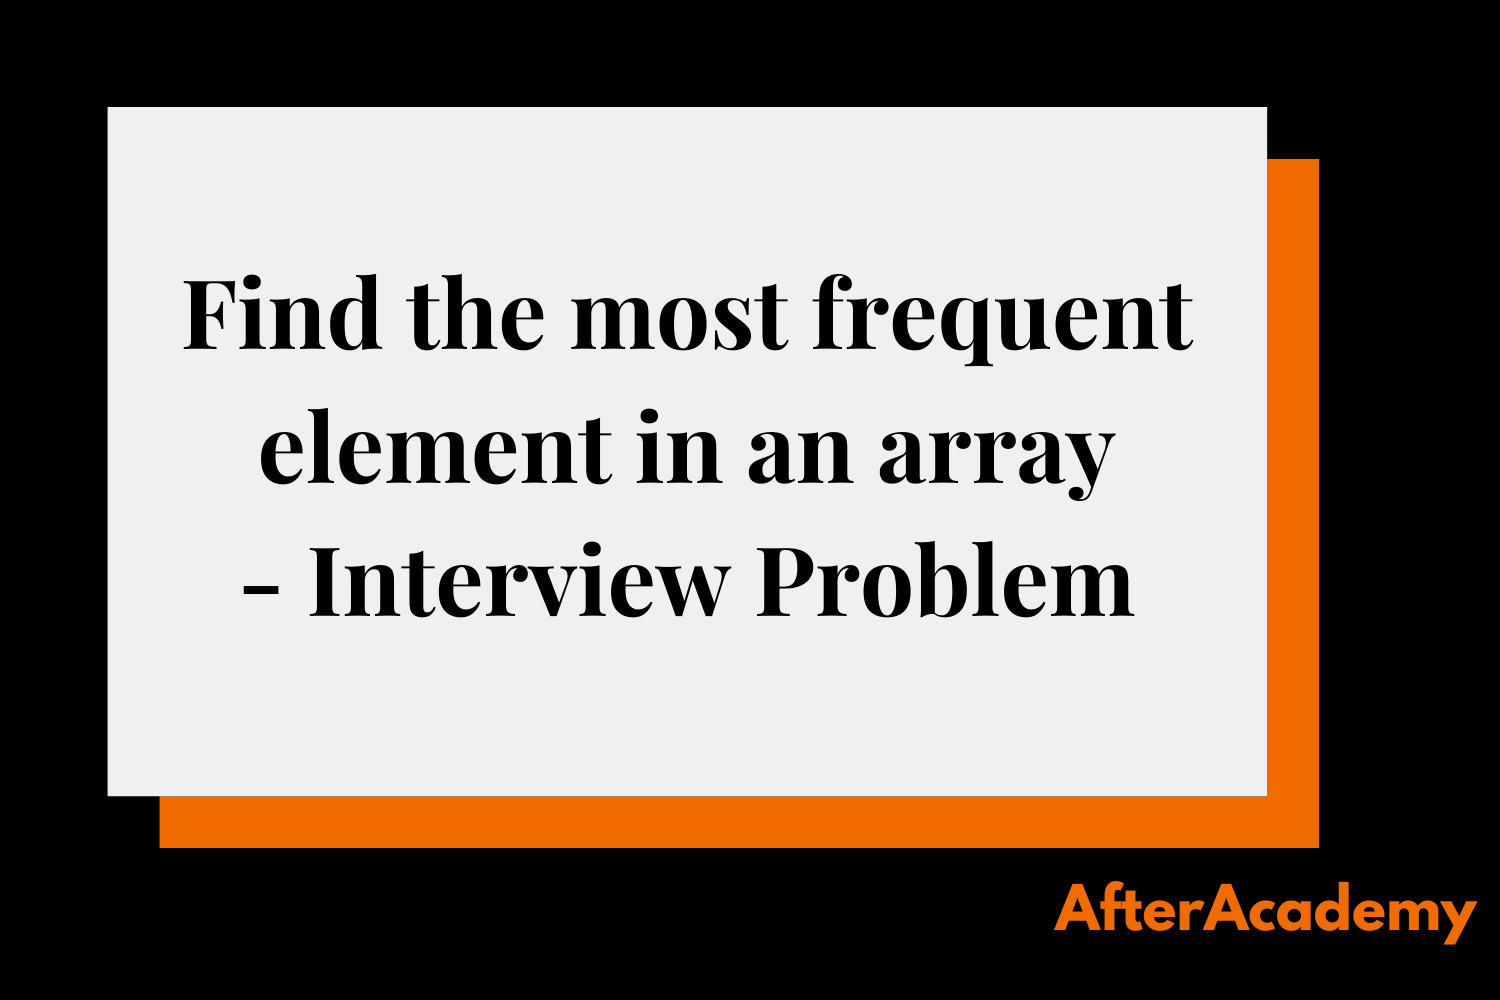 Find the most frequent element in an array - Interview Problem